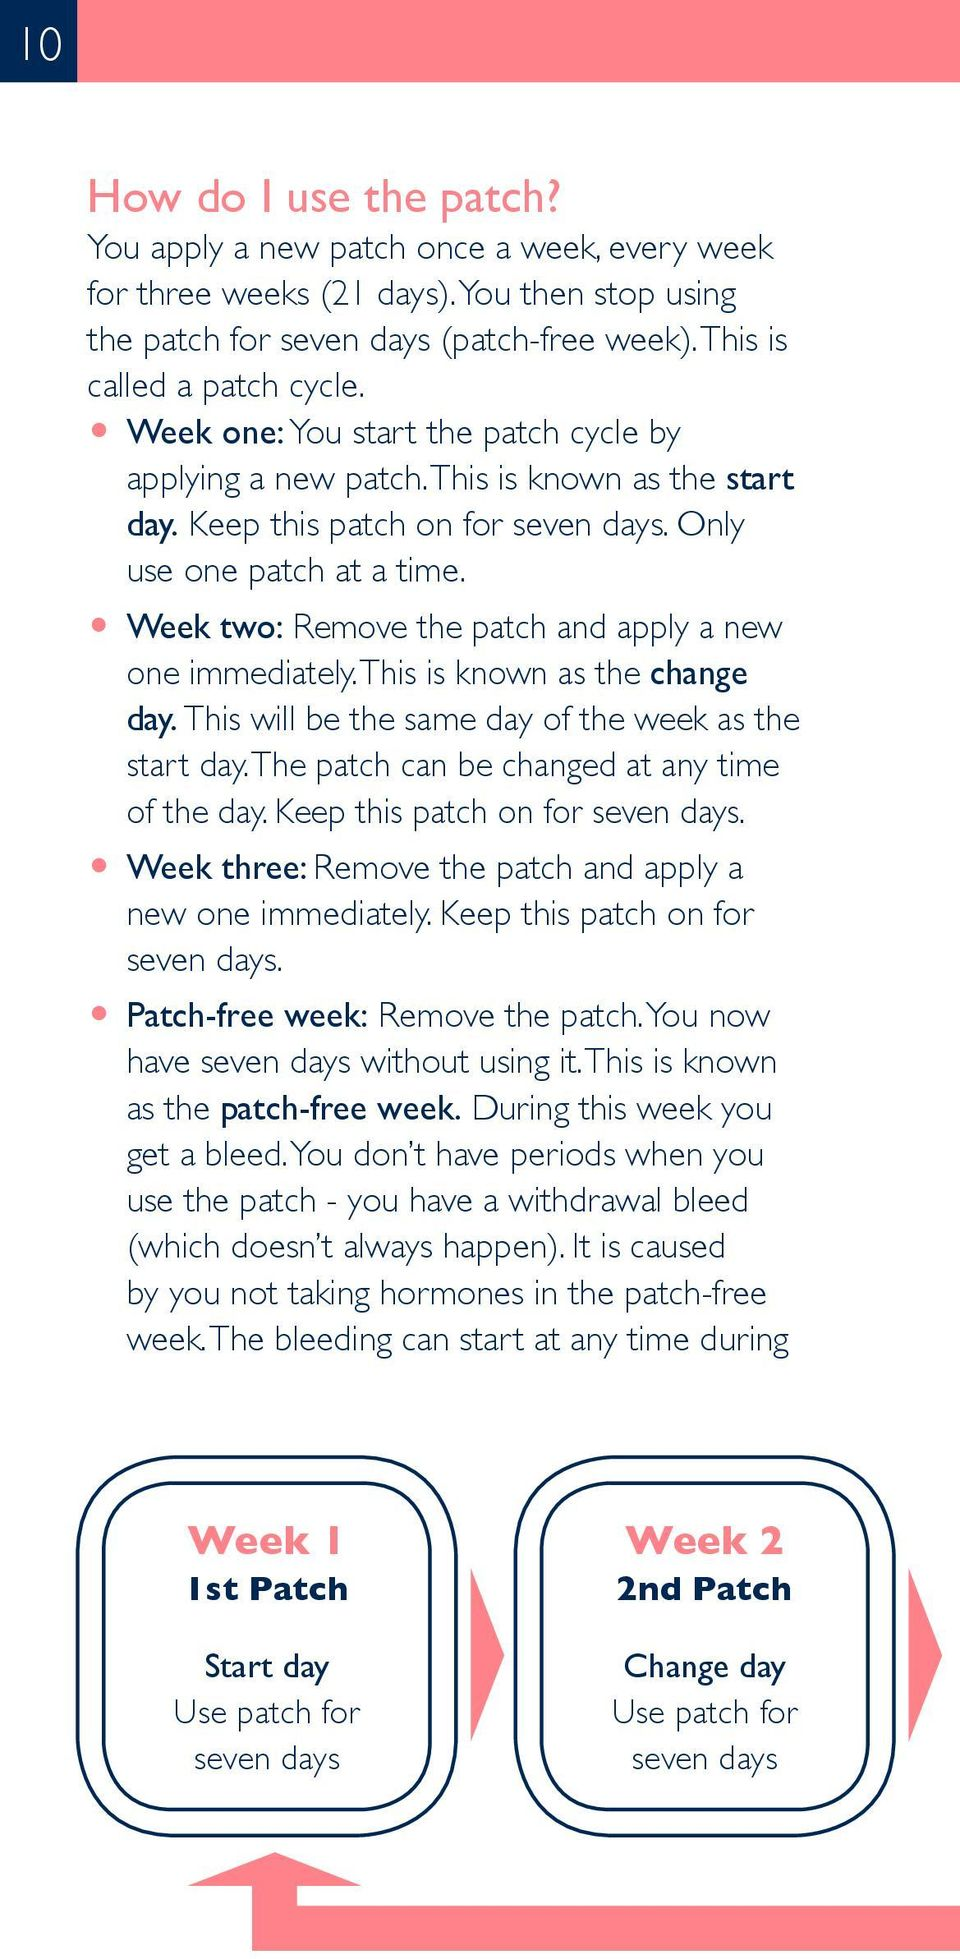 O Week two: Remove the patch and apply a new one immediately. This is known as the change day. This will be the same day of the week as the start day. The patch can be changed at any time of the day.